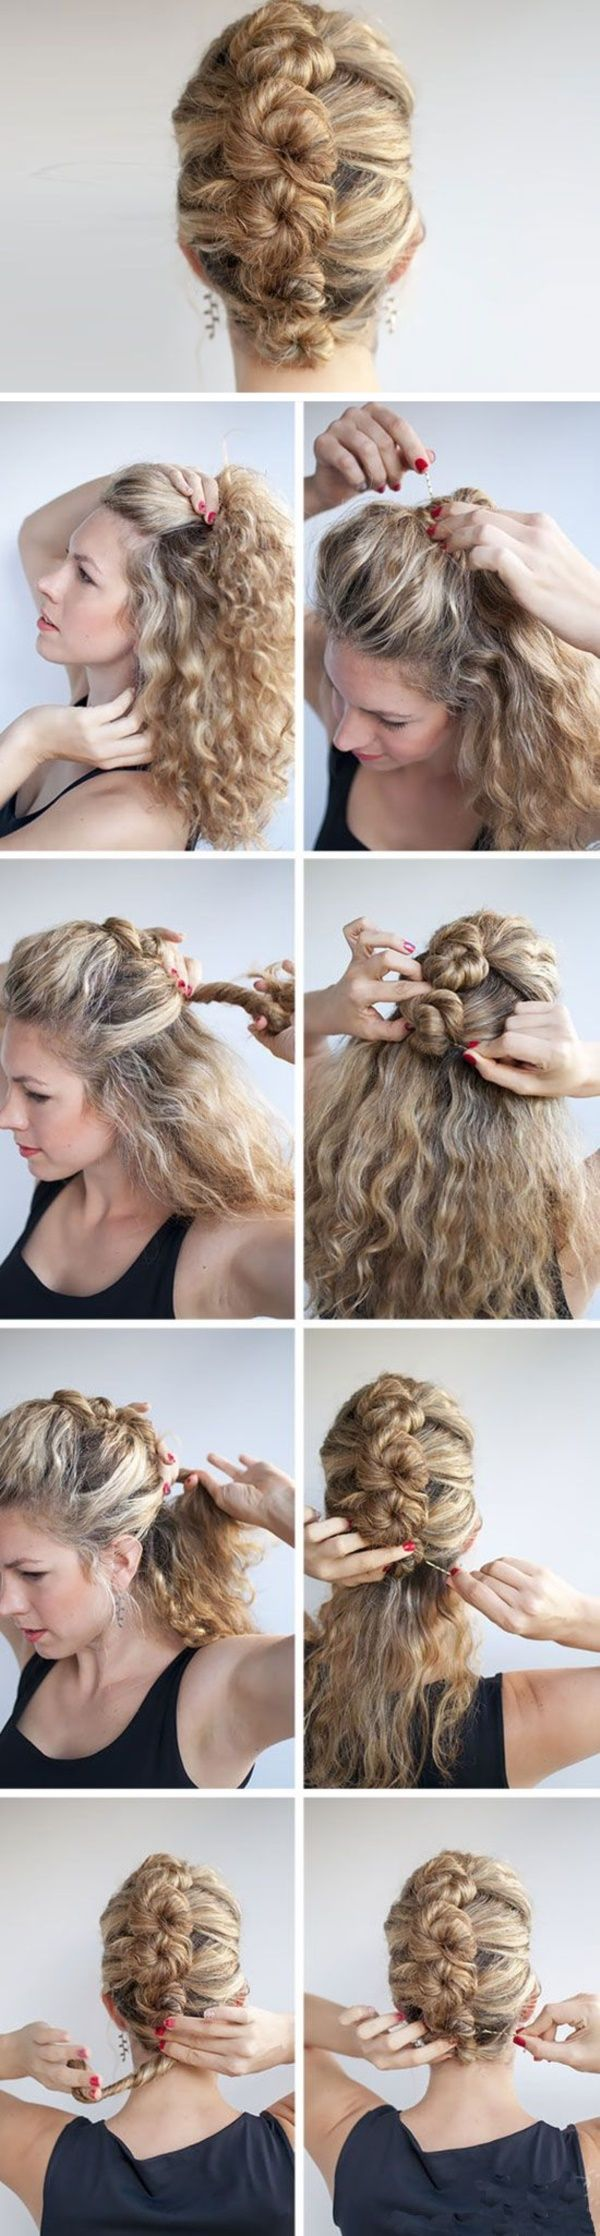 16 best air hostess hairstyles images on pinterest | at sign